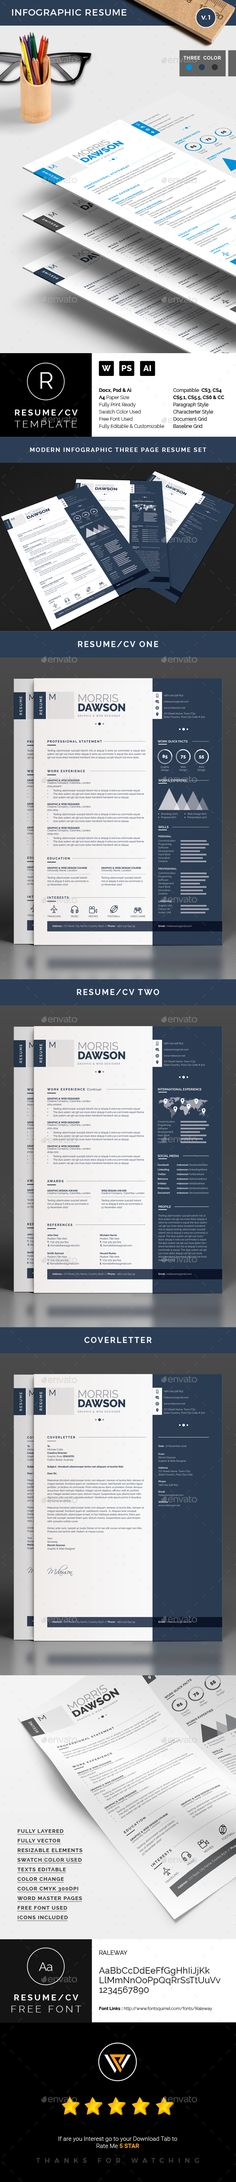 Resume Ai illustrator, Cv template and Resume cv - illustrator resume